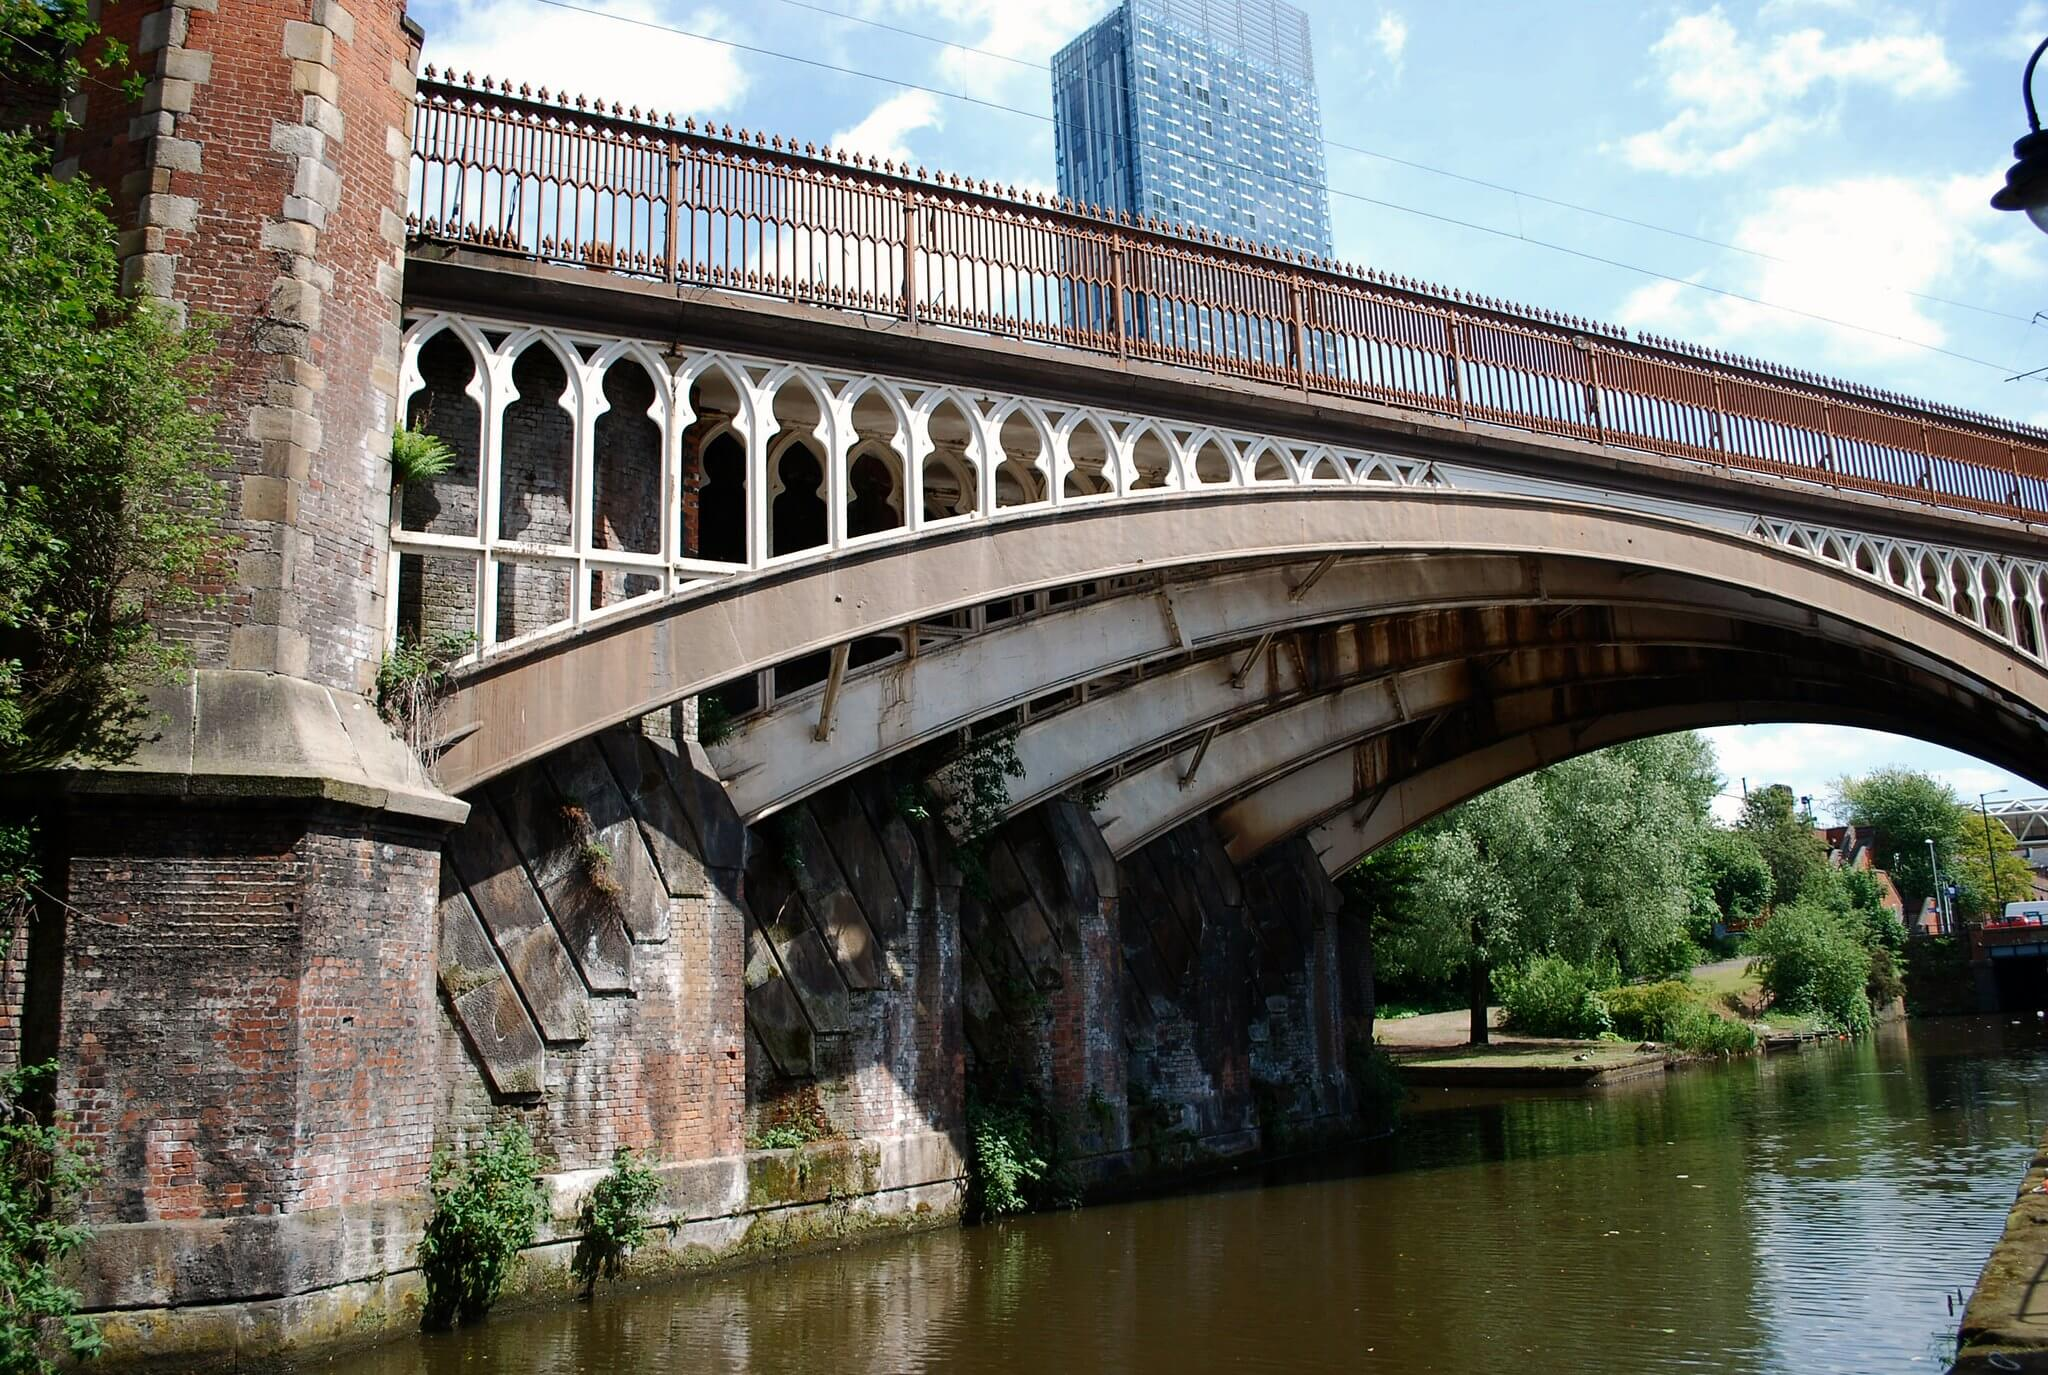 Castelfield Manchester, things to do in Castlefield